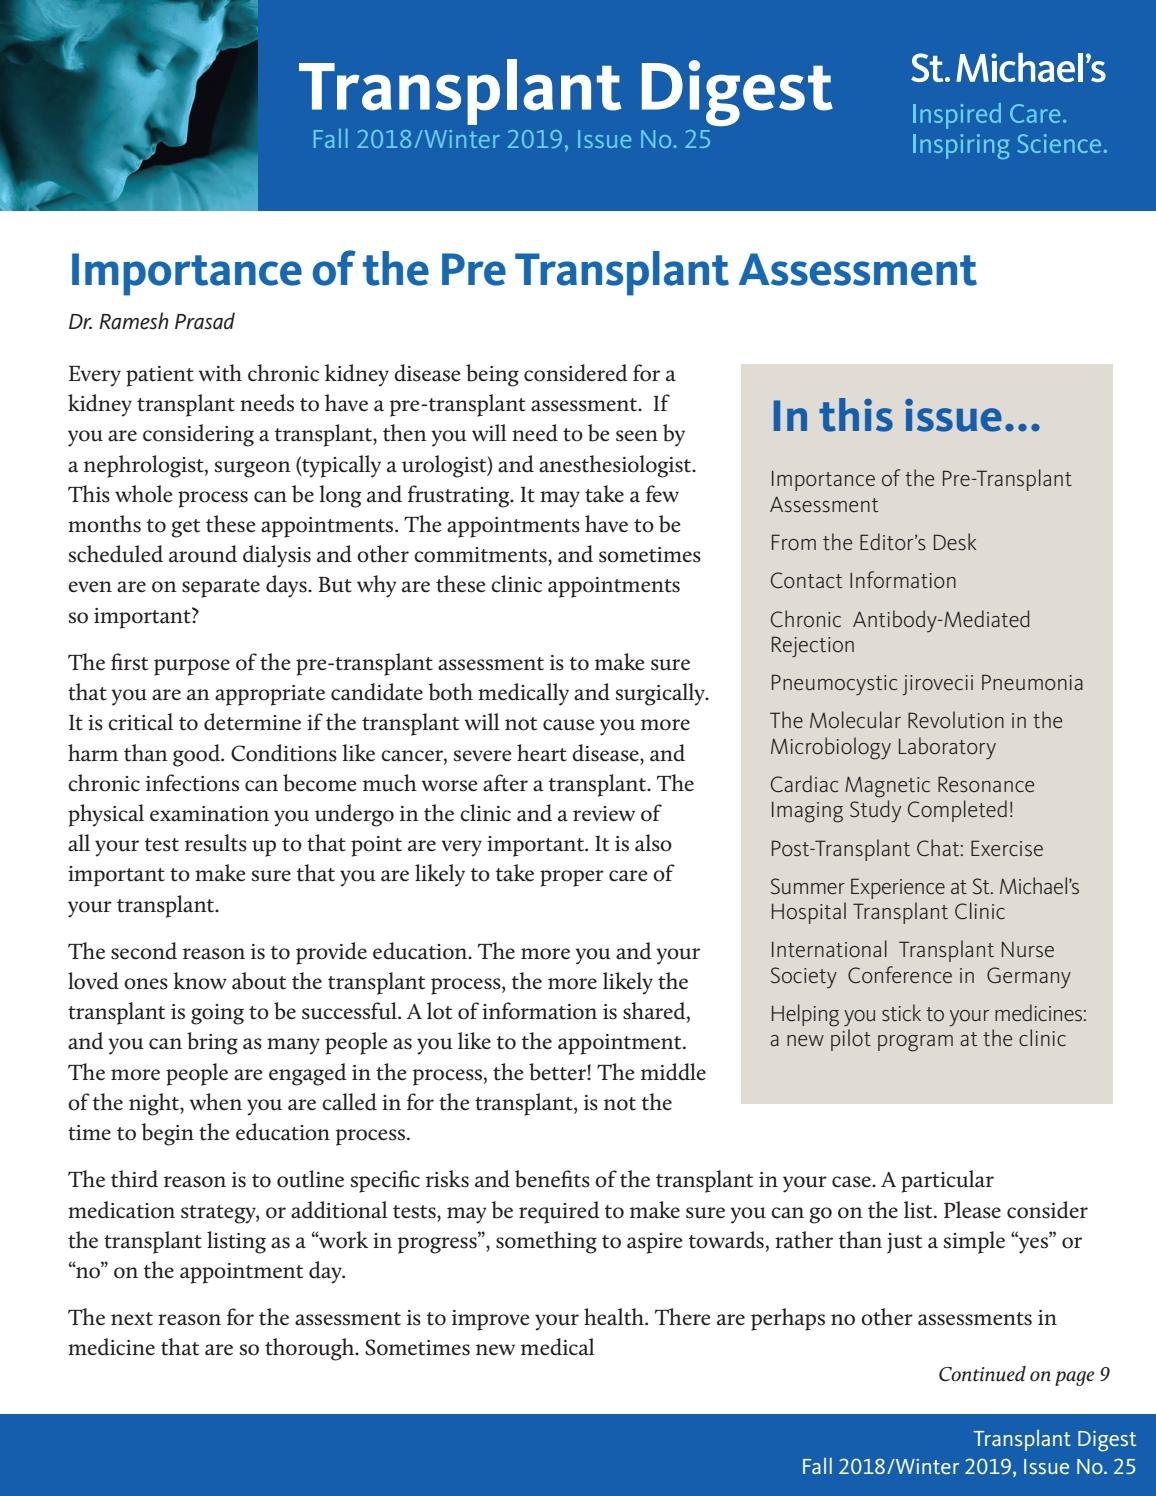 Transplant Digest - Issue 25 (Fall 2018/Winter 2019) by St